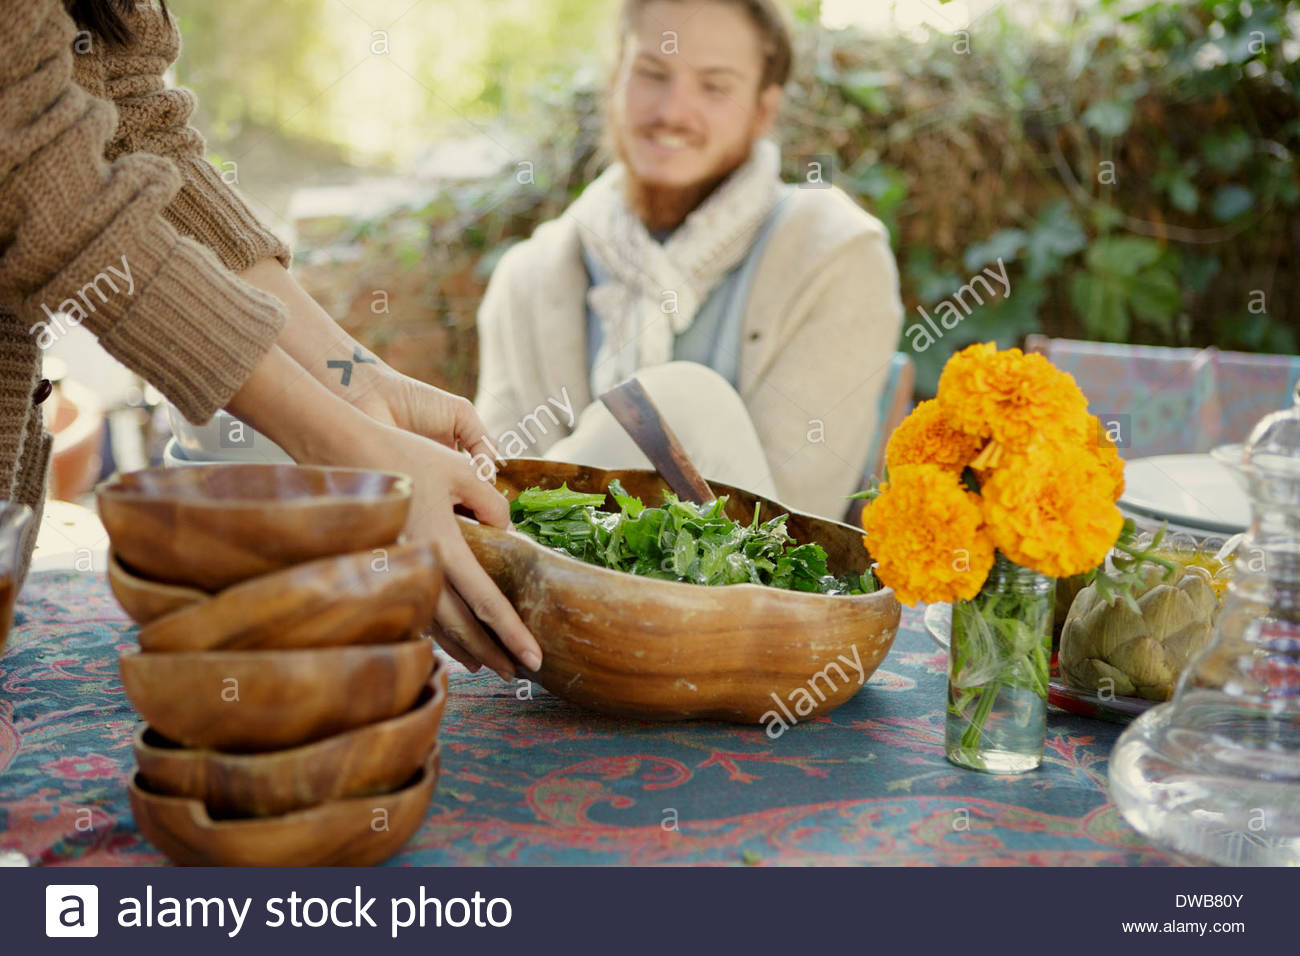 Young woman holding salad bowl at garden party - Stock Image